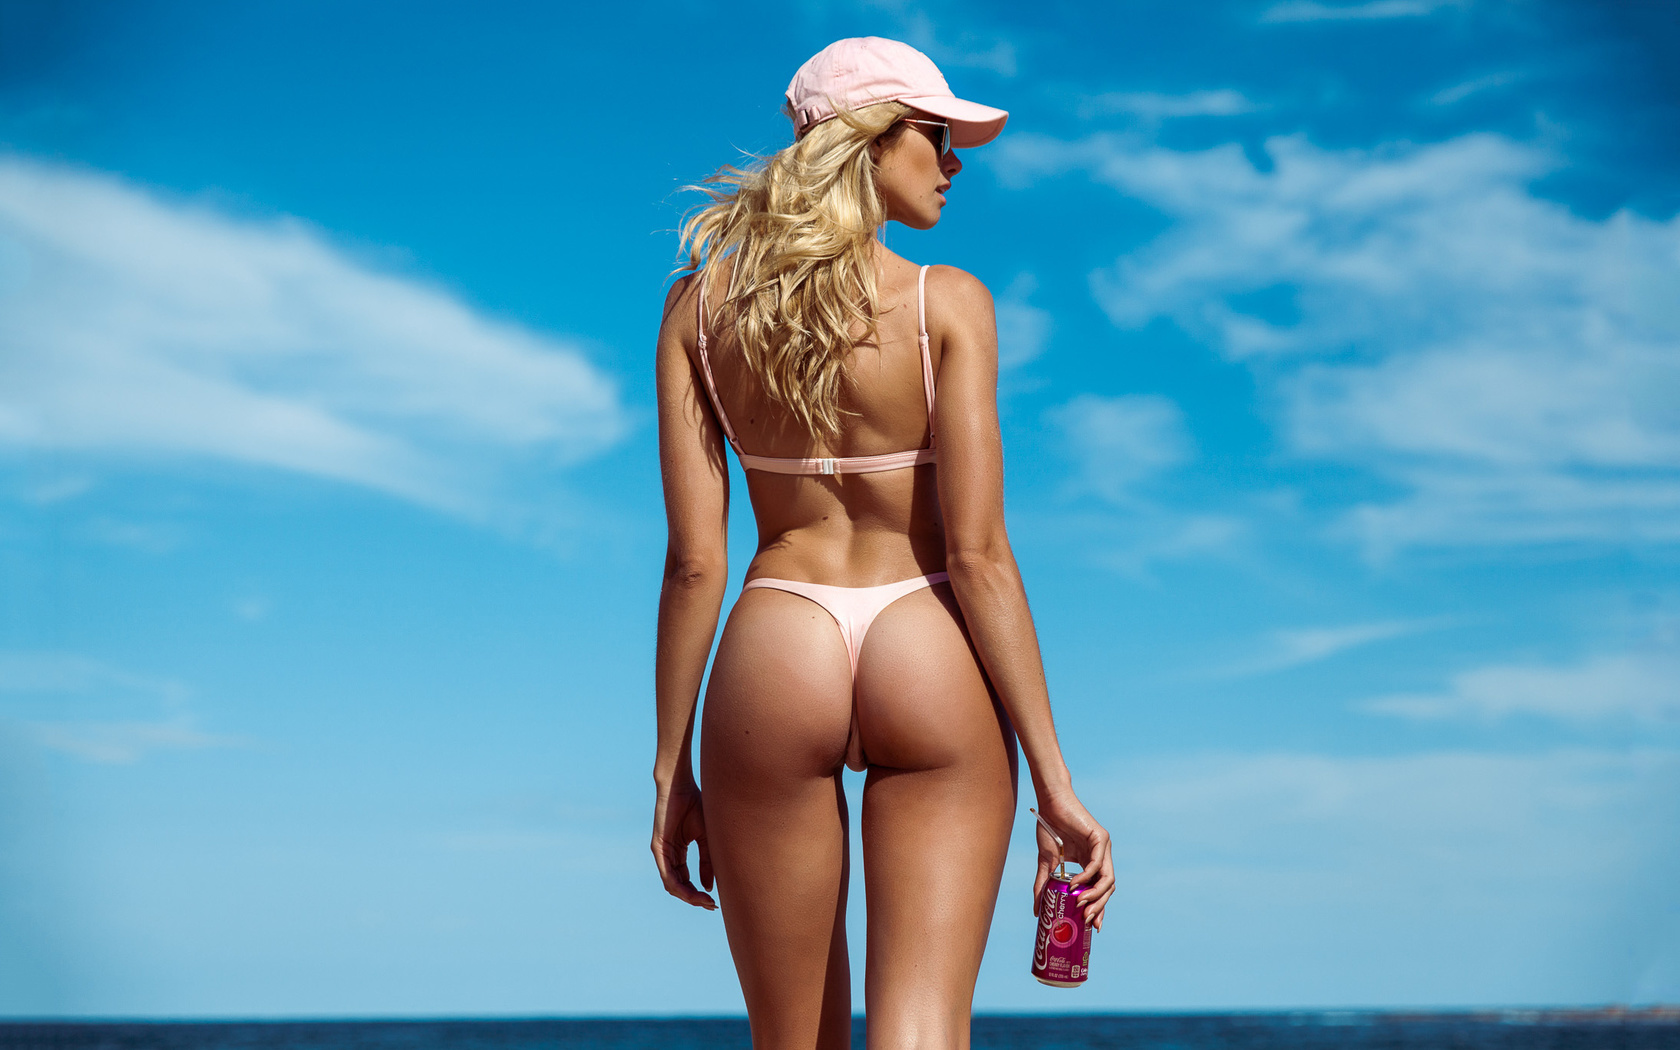 beautiful, women, cute, blonde, pretty, sexy, model, perfect, hot, ass, bikini, woman, sun, glasses, beach, cap, drink, clouds, sunglasses